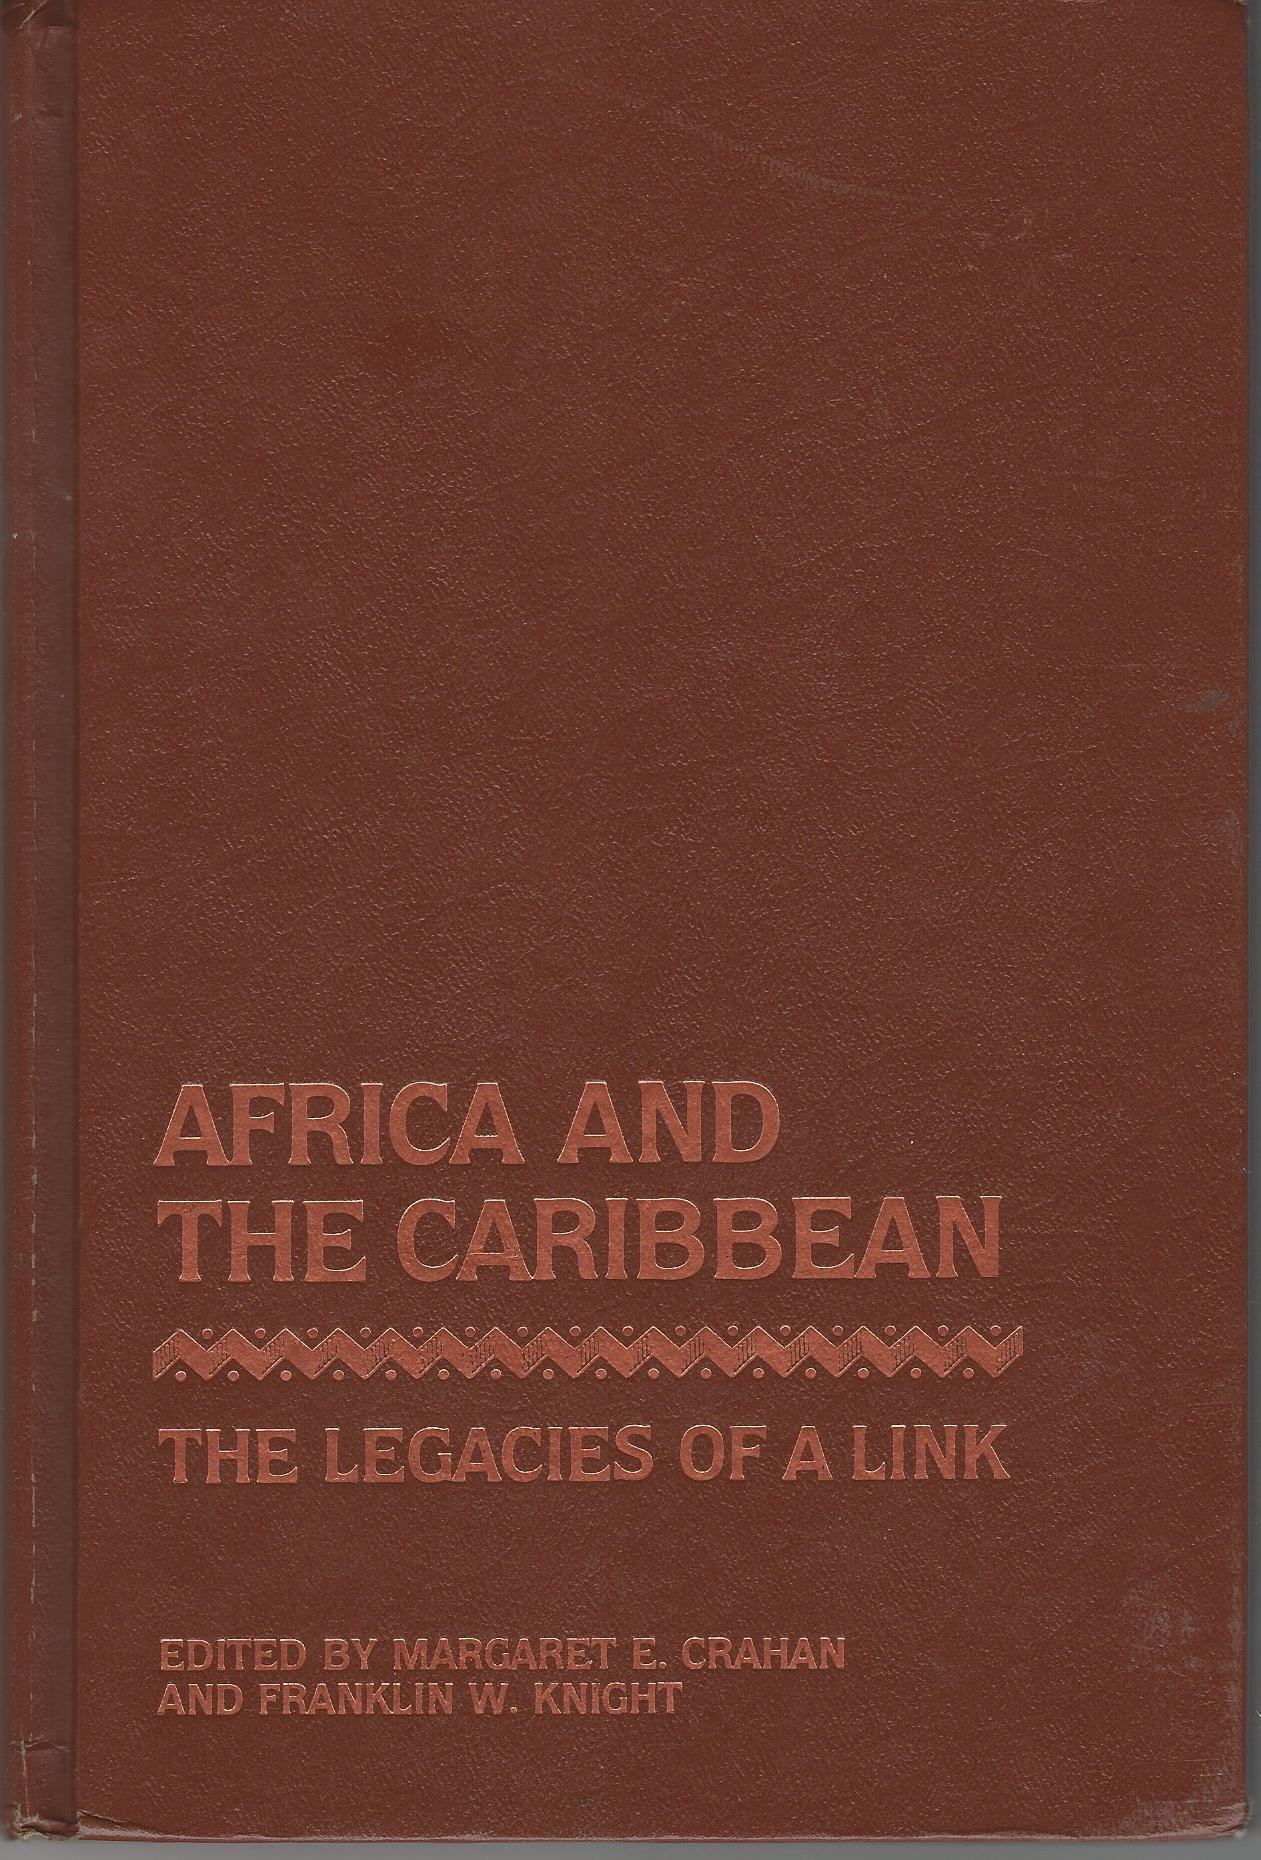 Image for Africa and the Caribbean: The Legacies of a Link (Johns Hopkins Studies in Atlantic History and Culture)